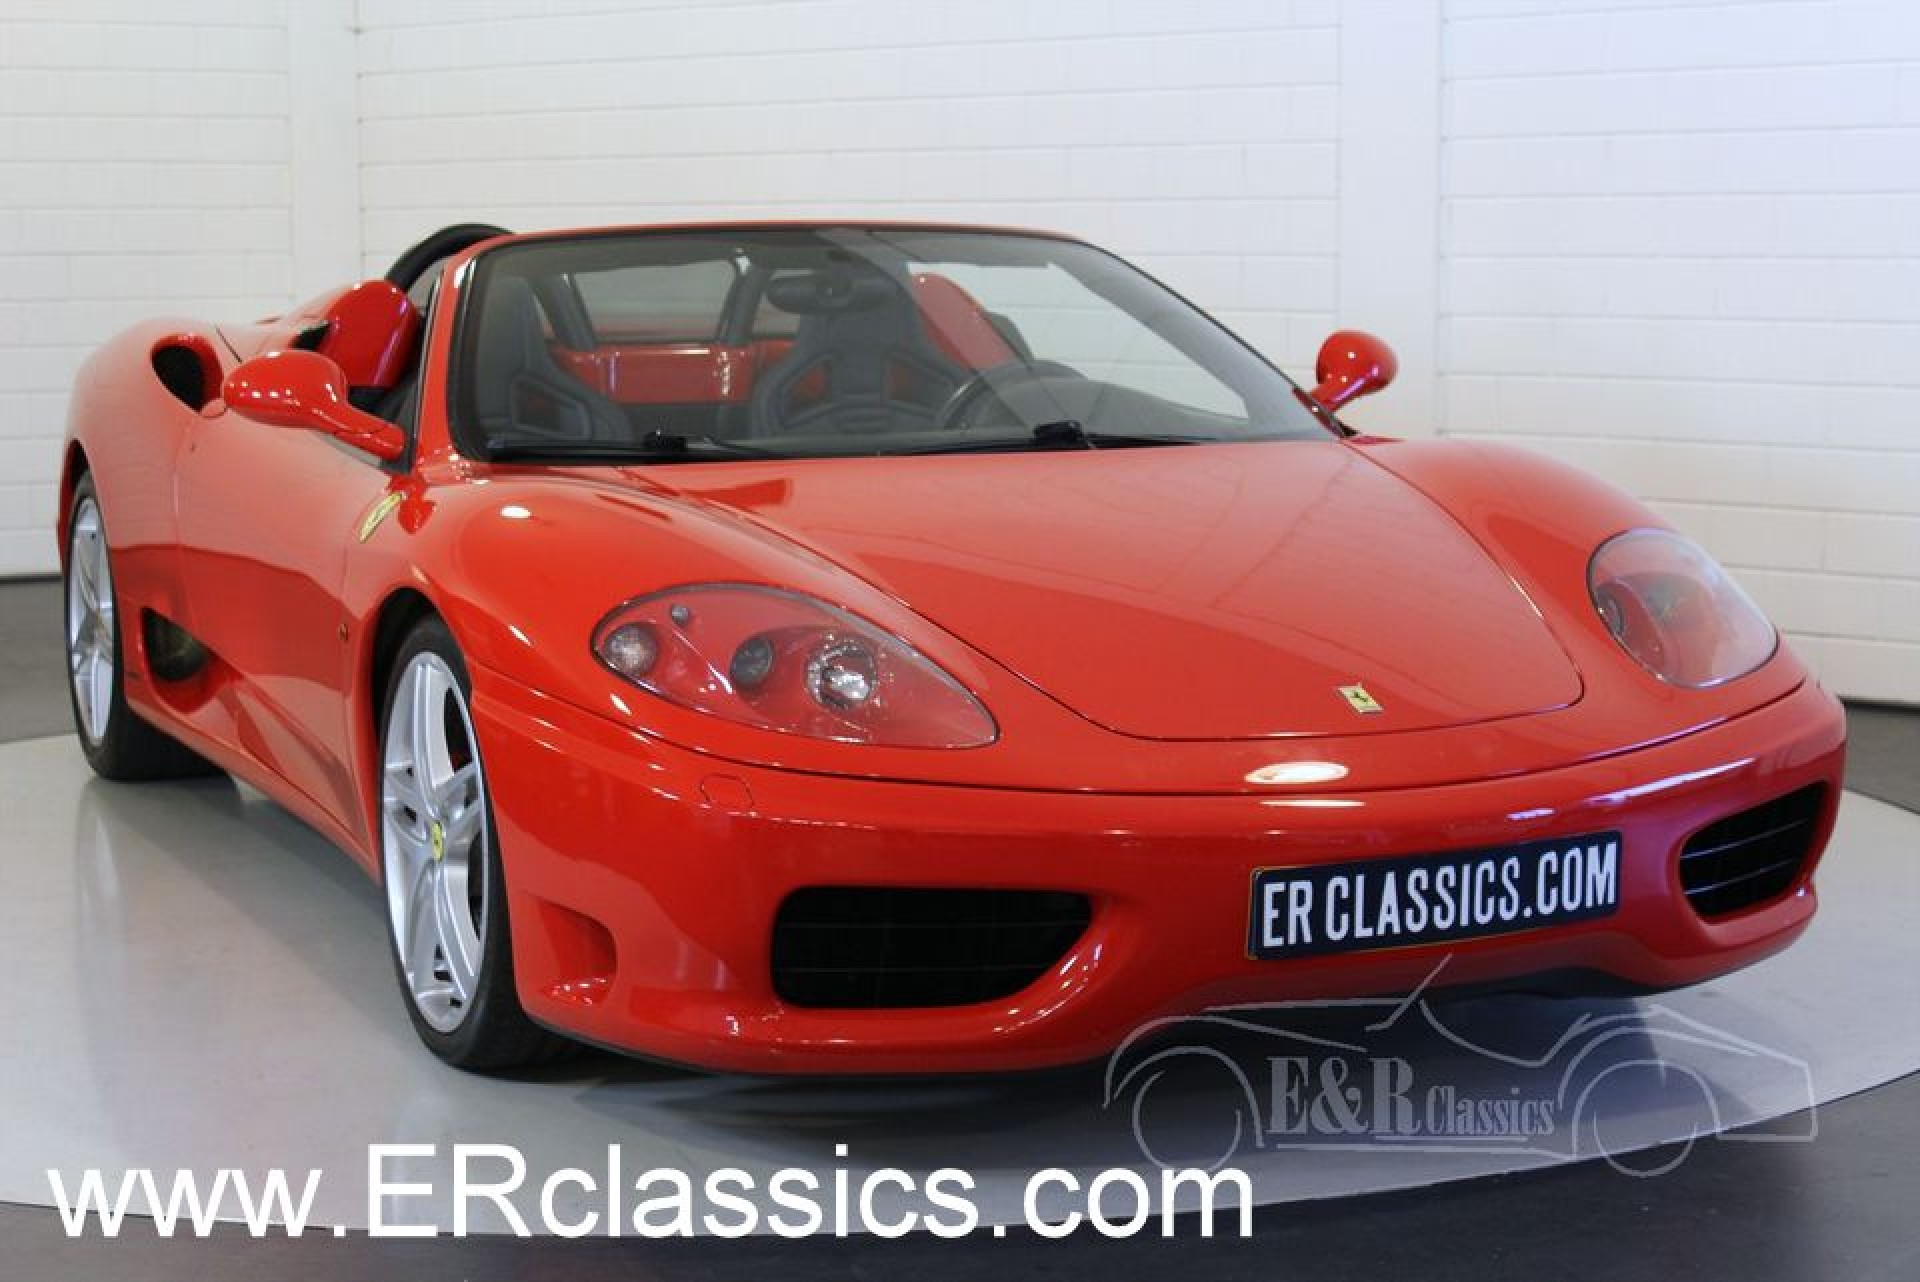 ferrari 360 spider f1 2002 vendre erclassics. Black Bedroom Furniture Sets. Home Design Ideas